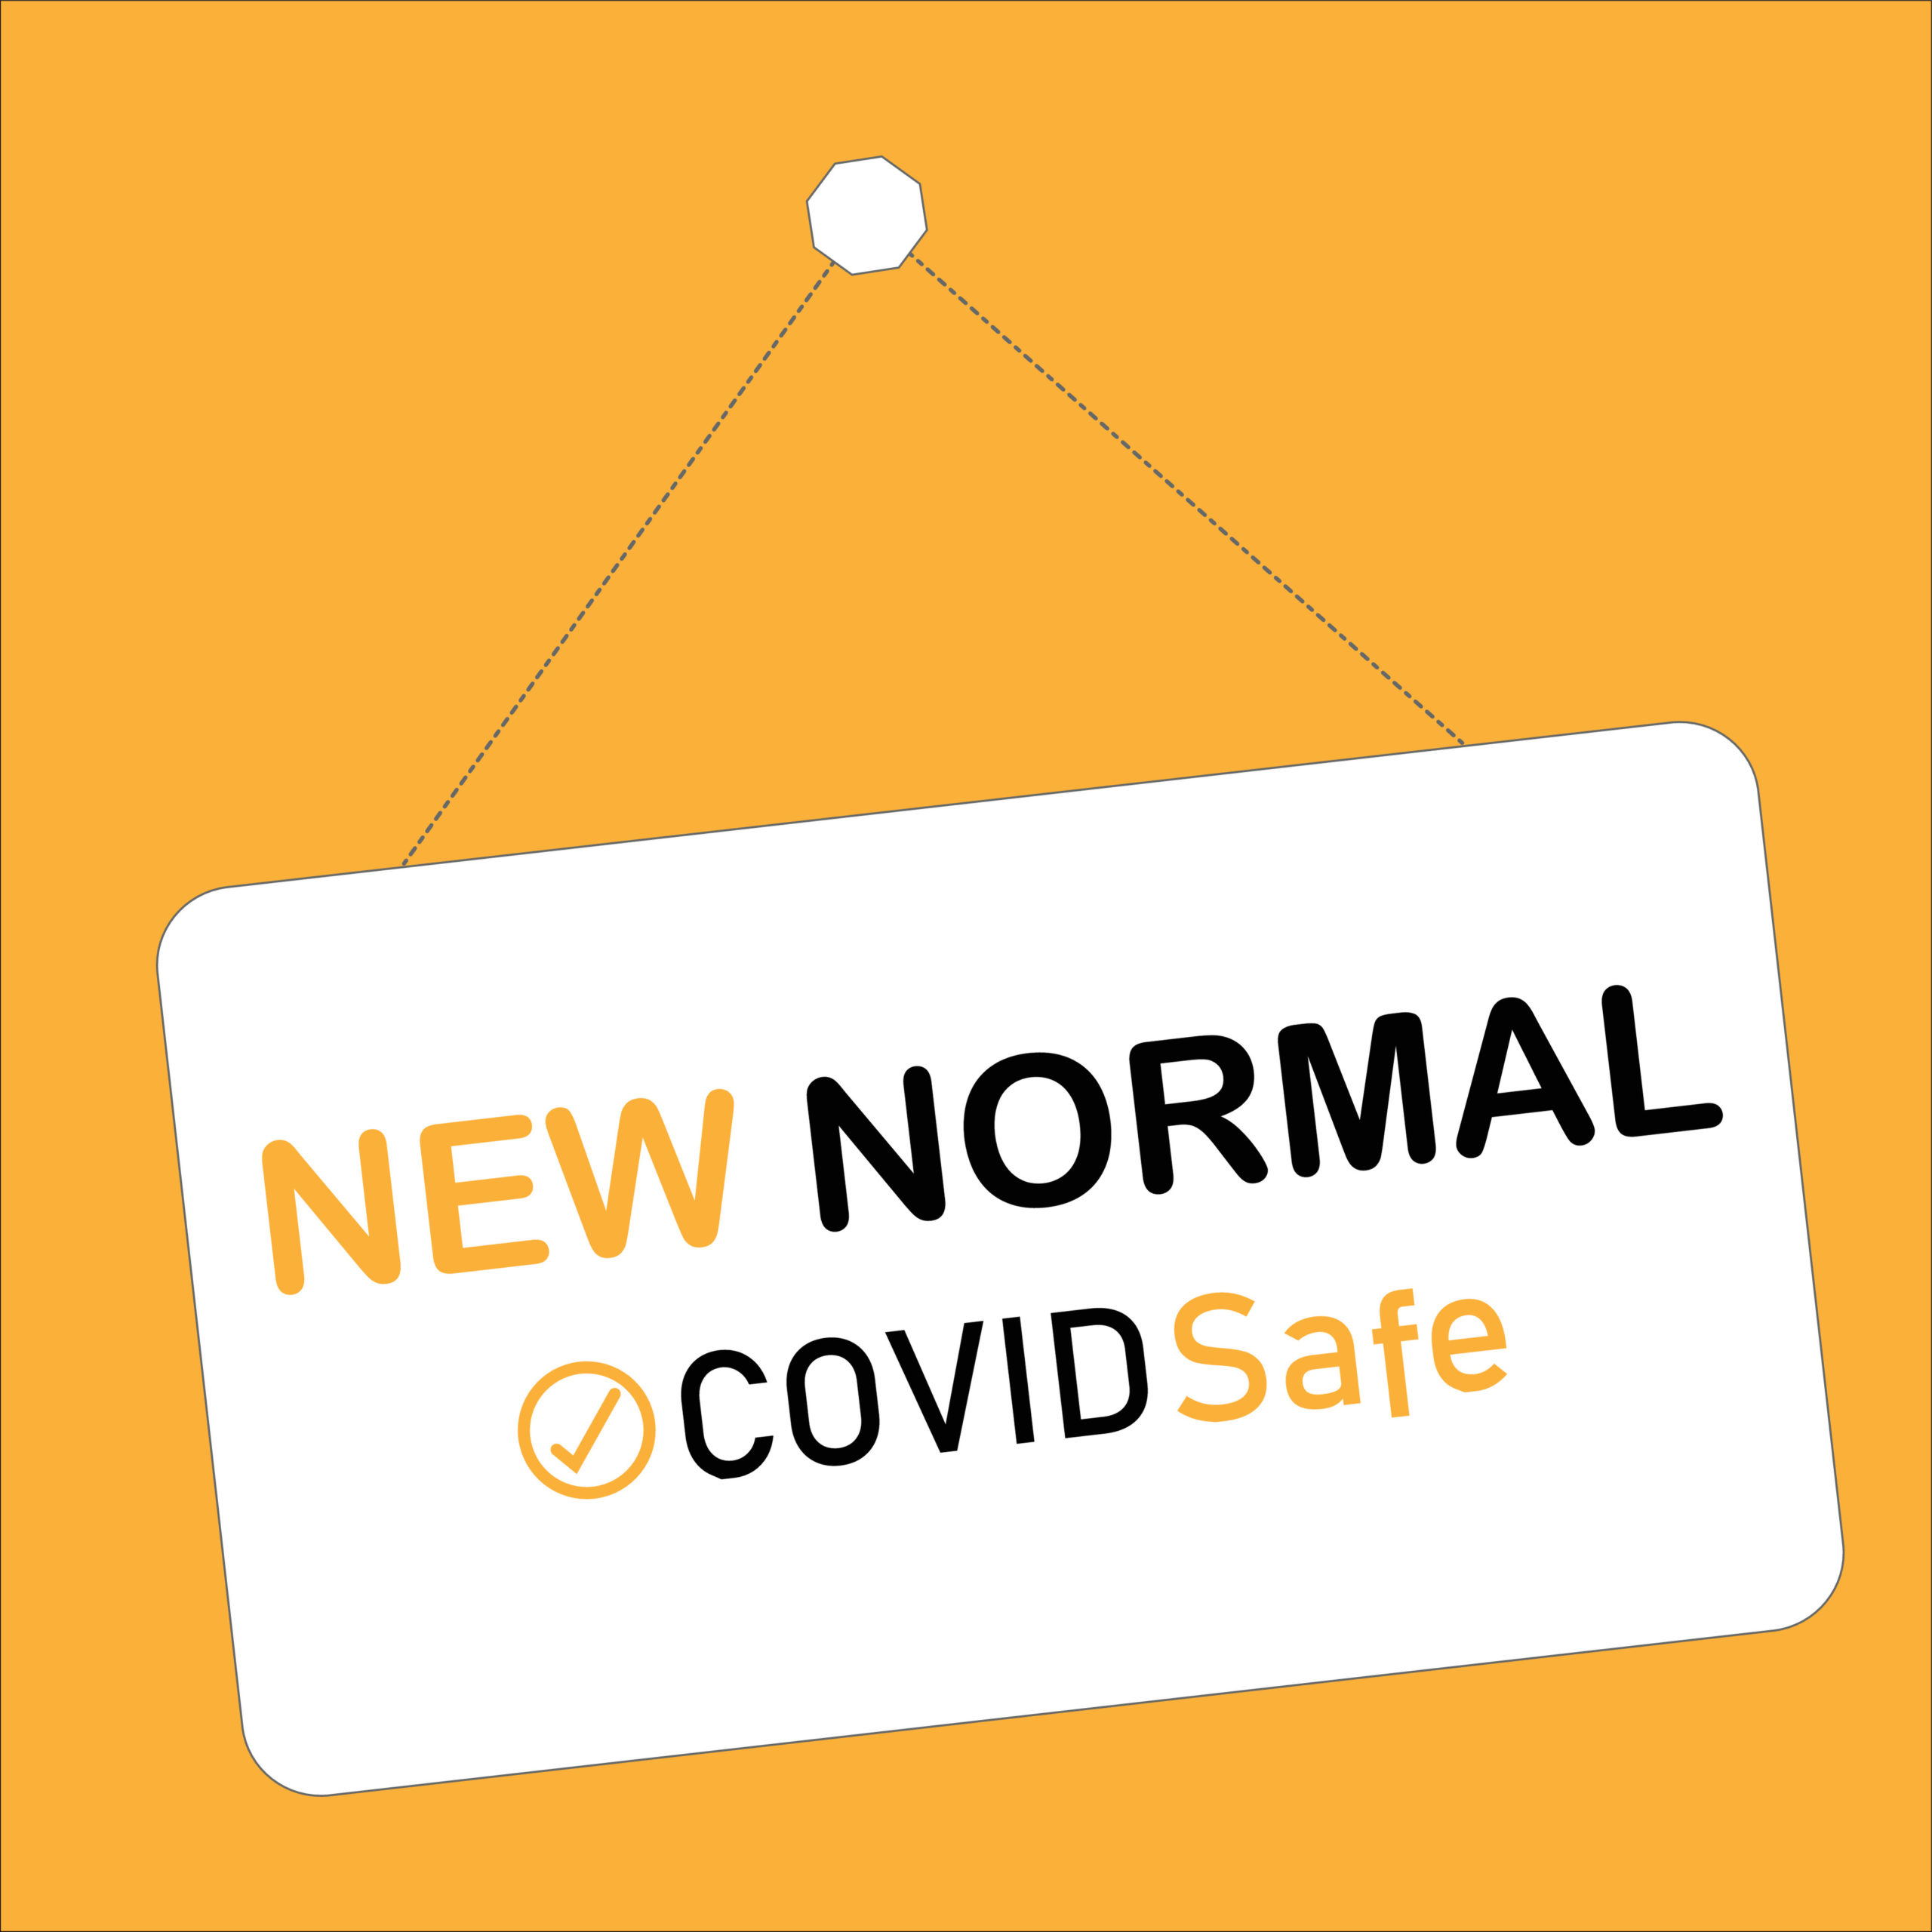 NEW NORMAL, COVID safe hanging sign, disruptive innovation way of post covid-19 coronavirus pandemic concept